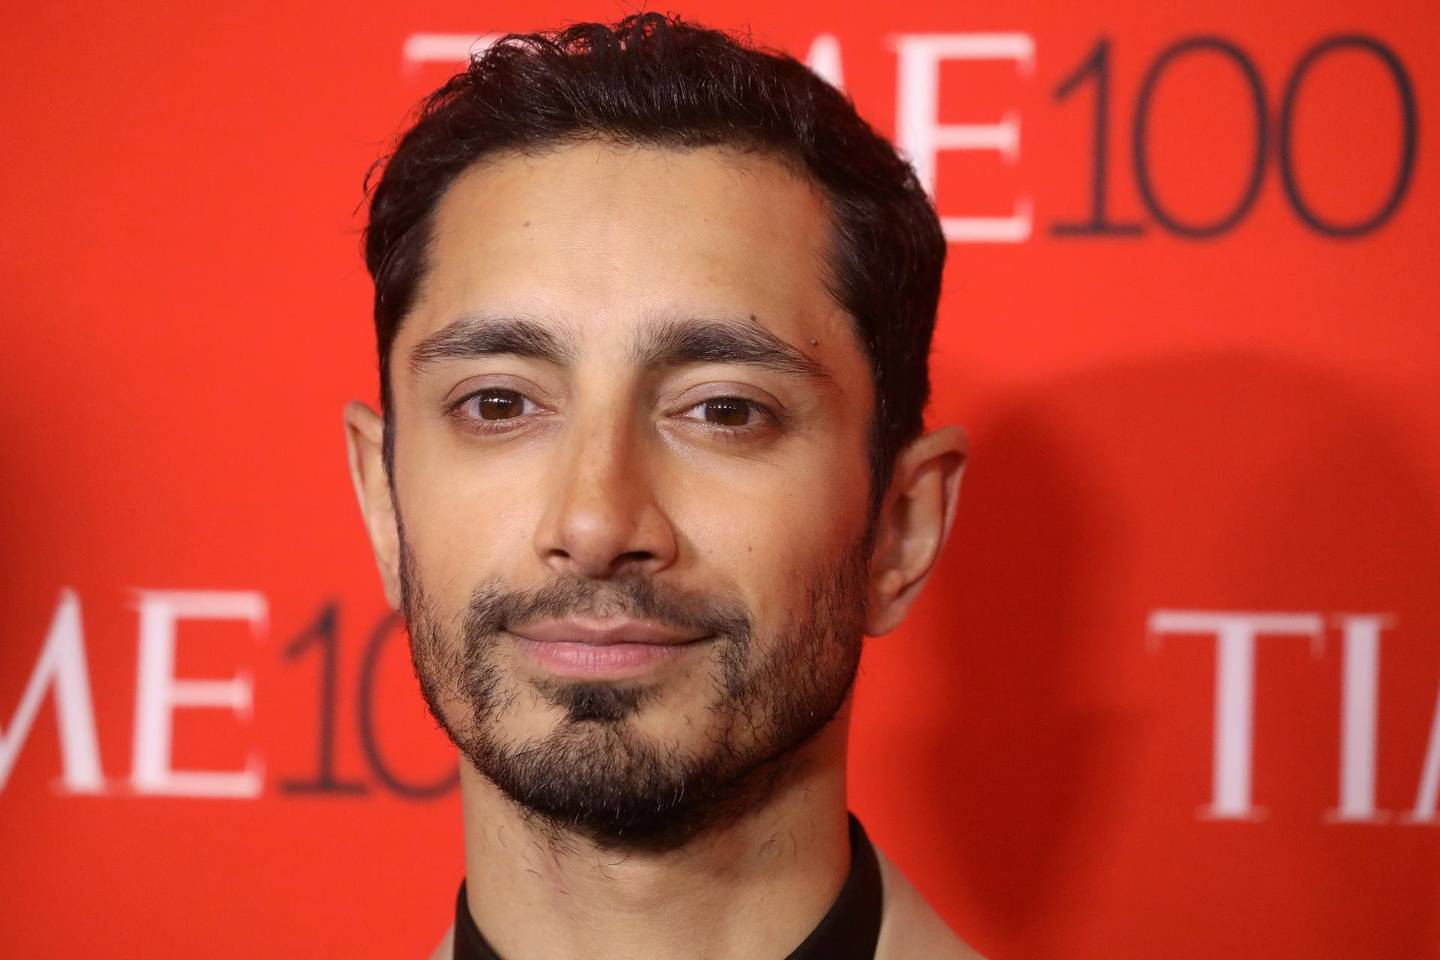 FILE PHOTO: Actor Riz Ahmed arrives for the Time 100 Gala in the Manhattan borough of New York, New York, U.S. April 25, 2017. Picture taken April 25, 2017.  REUTERS/Carlo Allegri/File Photo